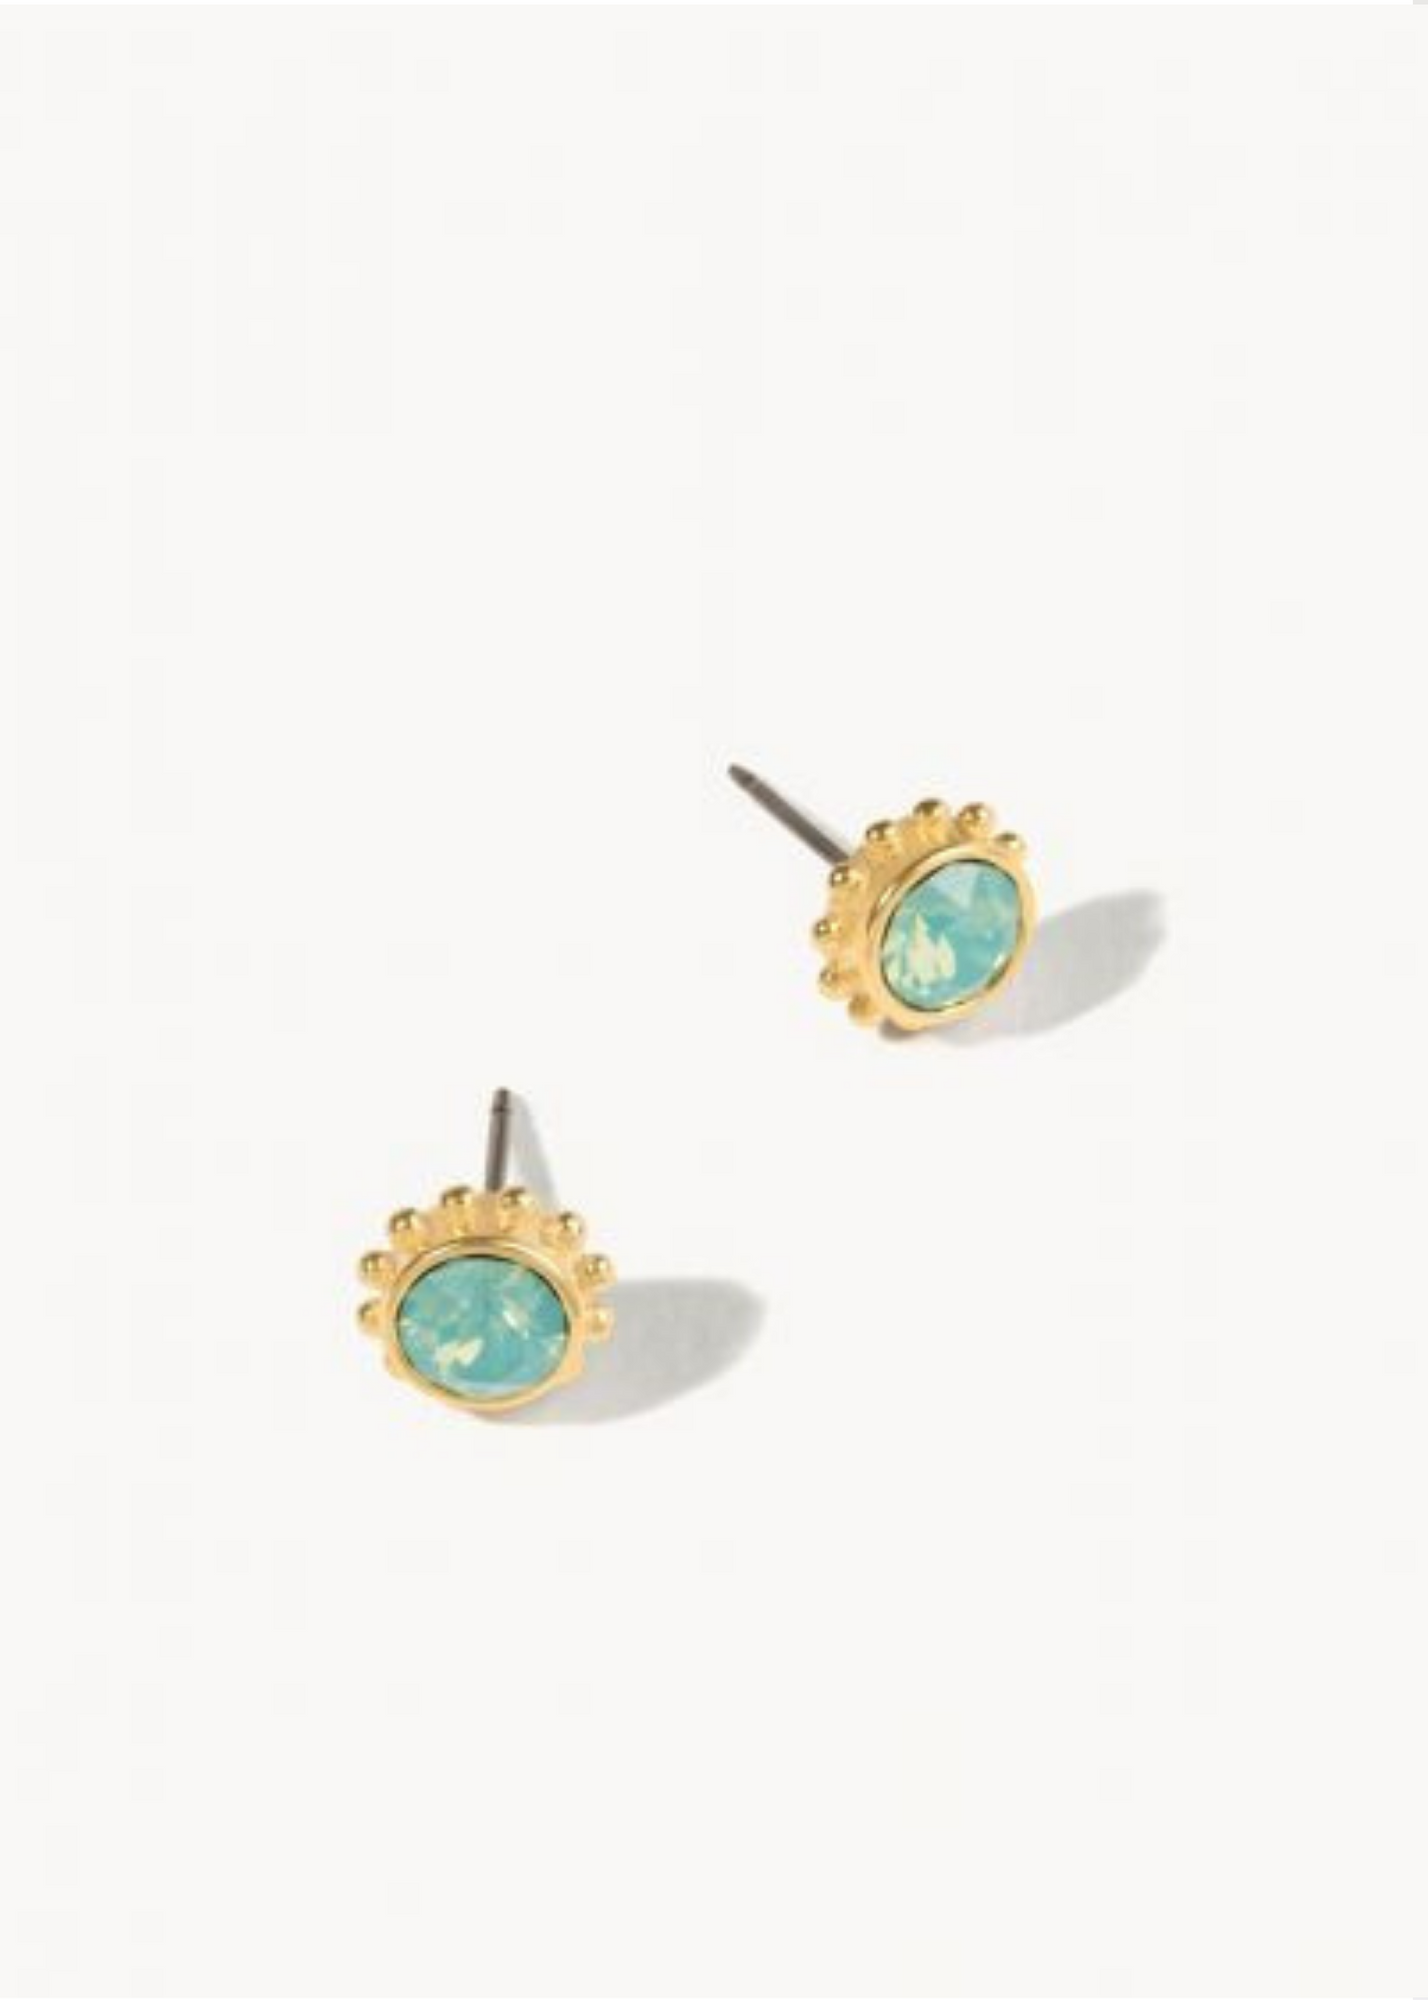 DELICATE ADORNED STUD EARRINGS - Gold/Pacific Opal